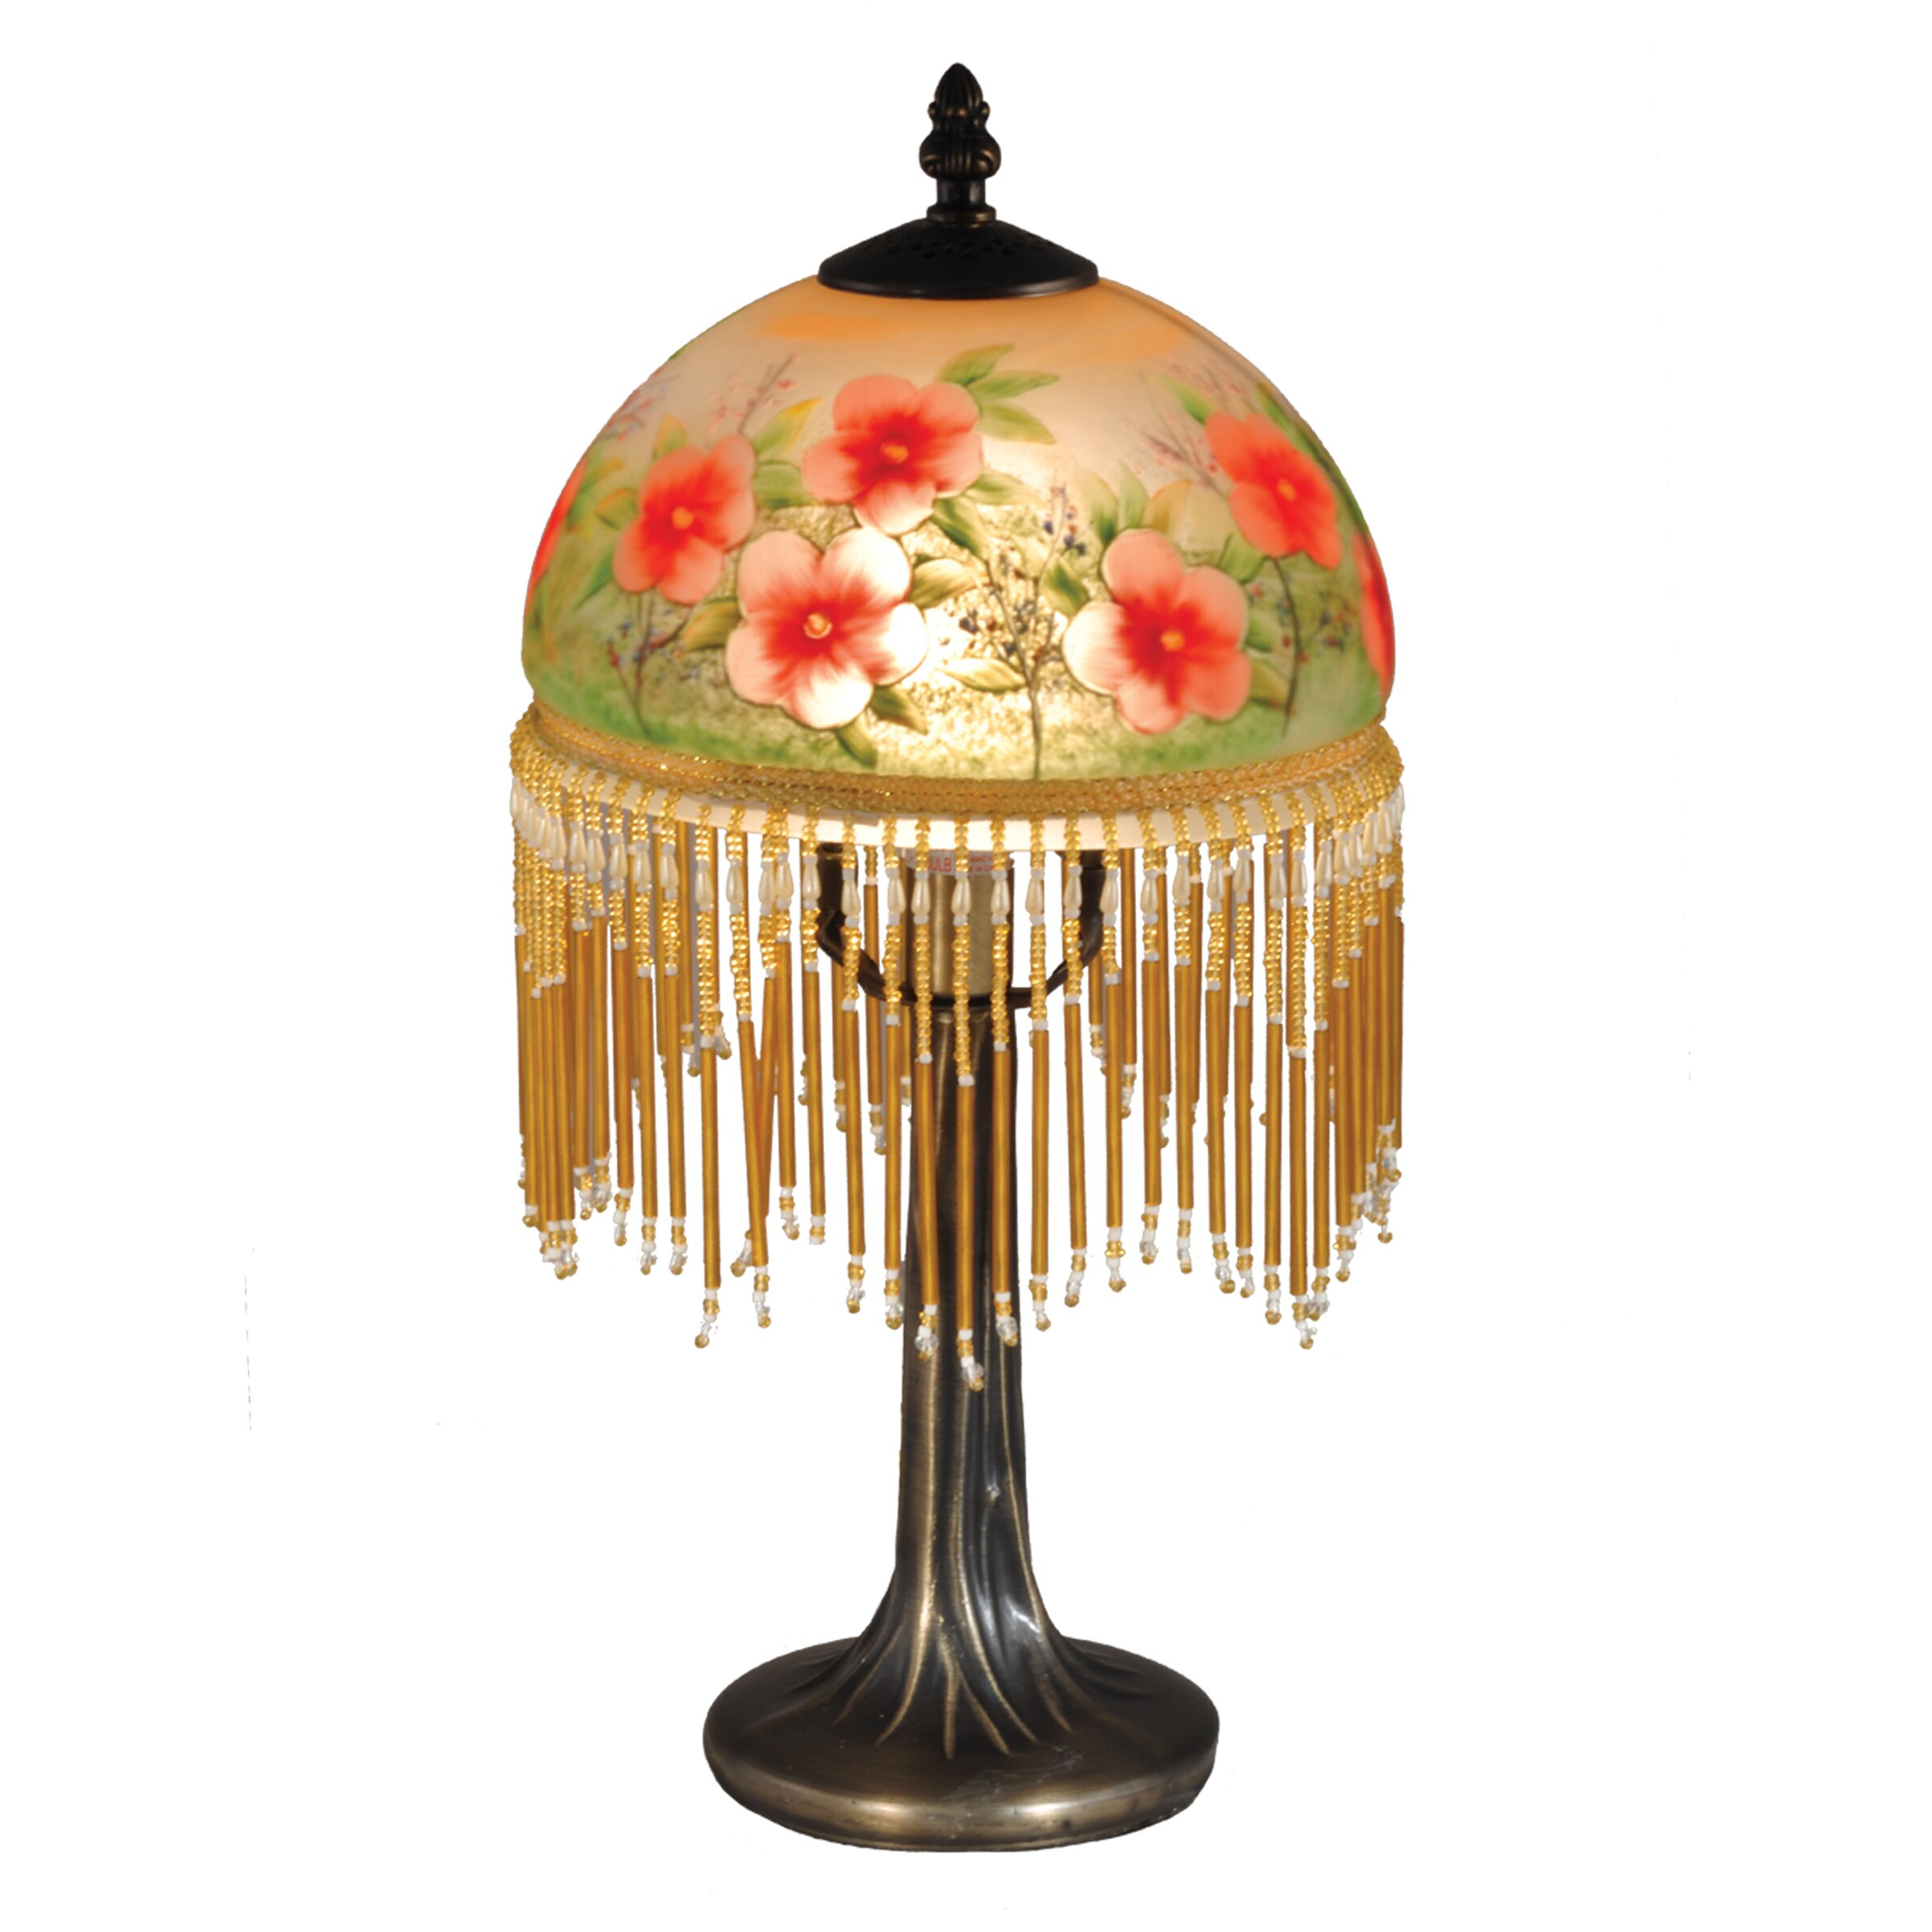 dale tiffany pansy beaded 14 5 h table lamp with bowl shade revie. Black Bedroom Furniture Sets. Home Design Ideas